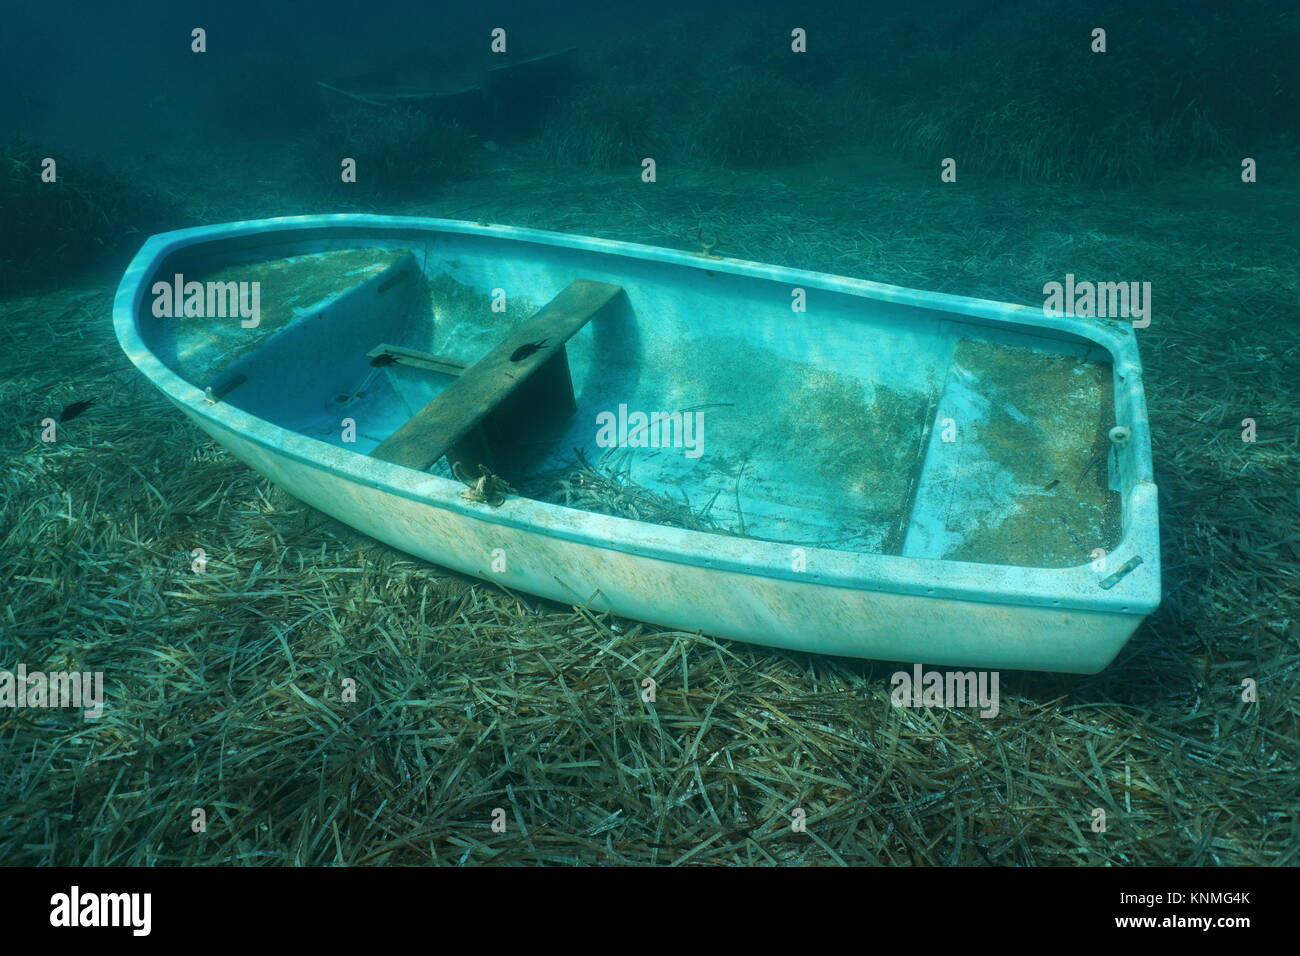 Underwater a small boat sunken on the seabed with leaves of Neptune grass, Mediterranean sea, Catalonia, Costa Brava, - Stock Image